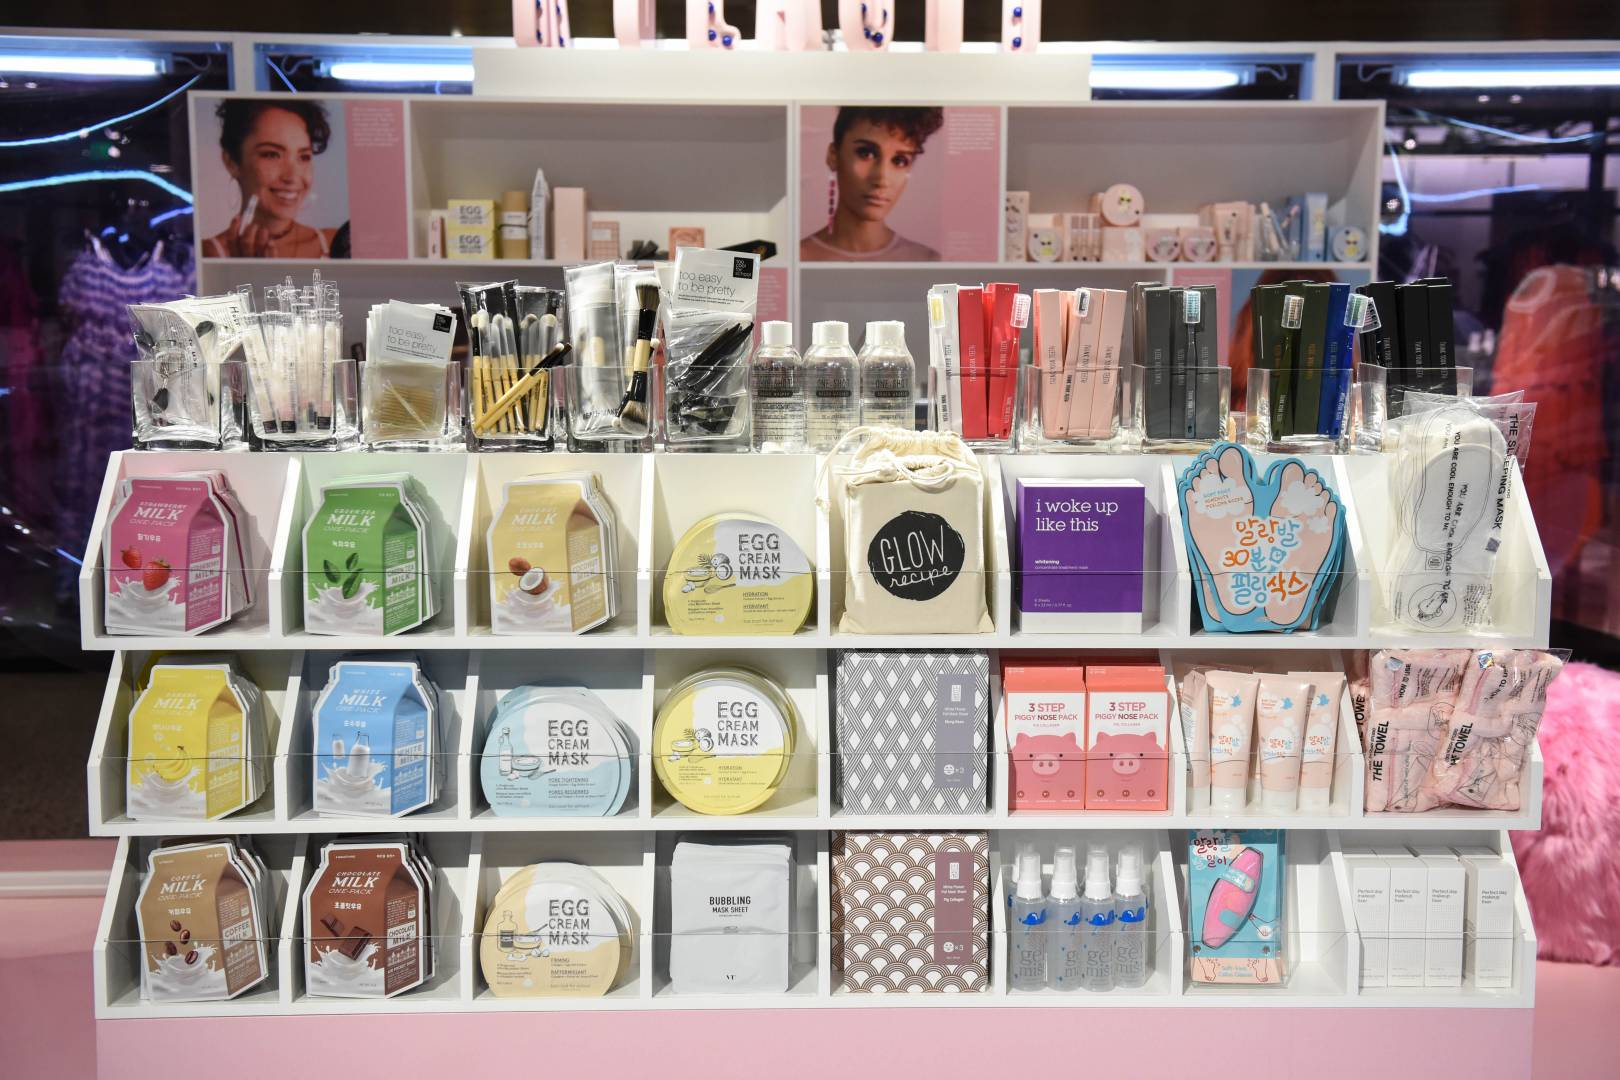 Nordstrom Vancouver Feeds K-Beauty Craze With New Skincare